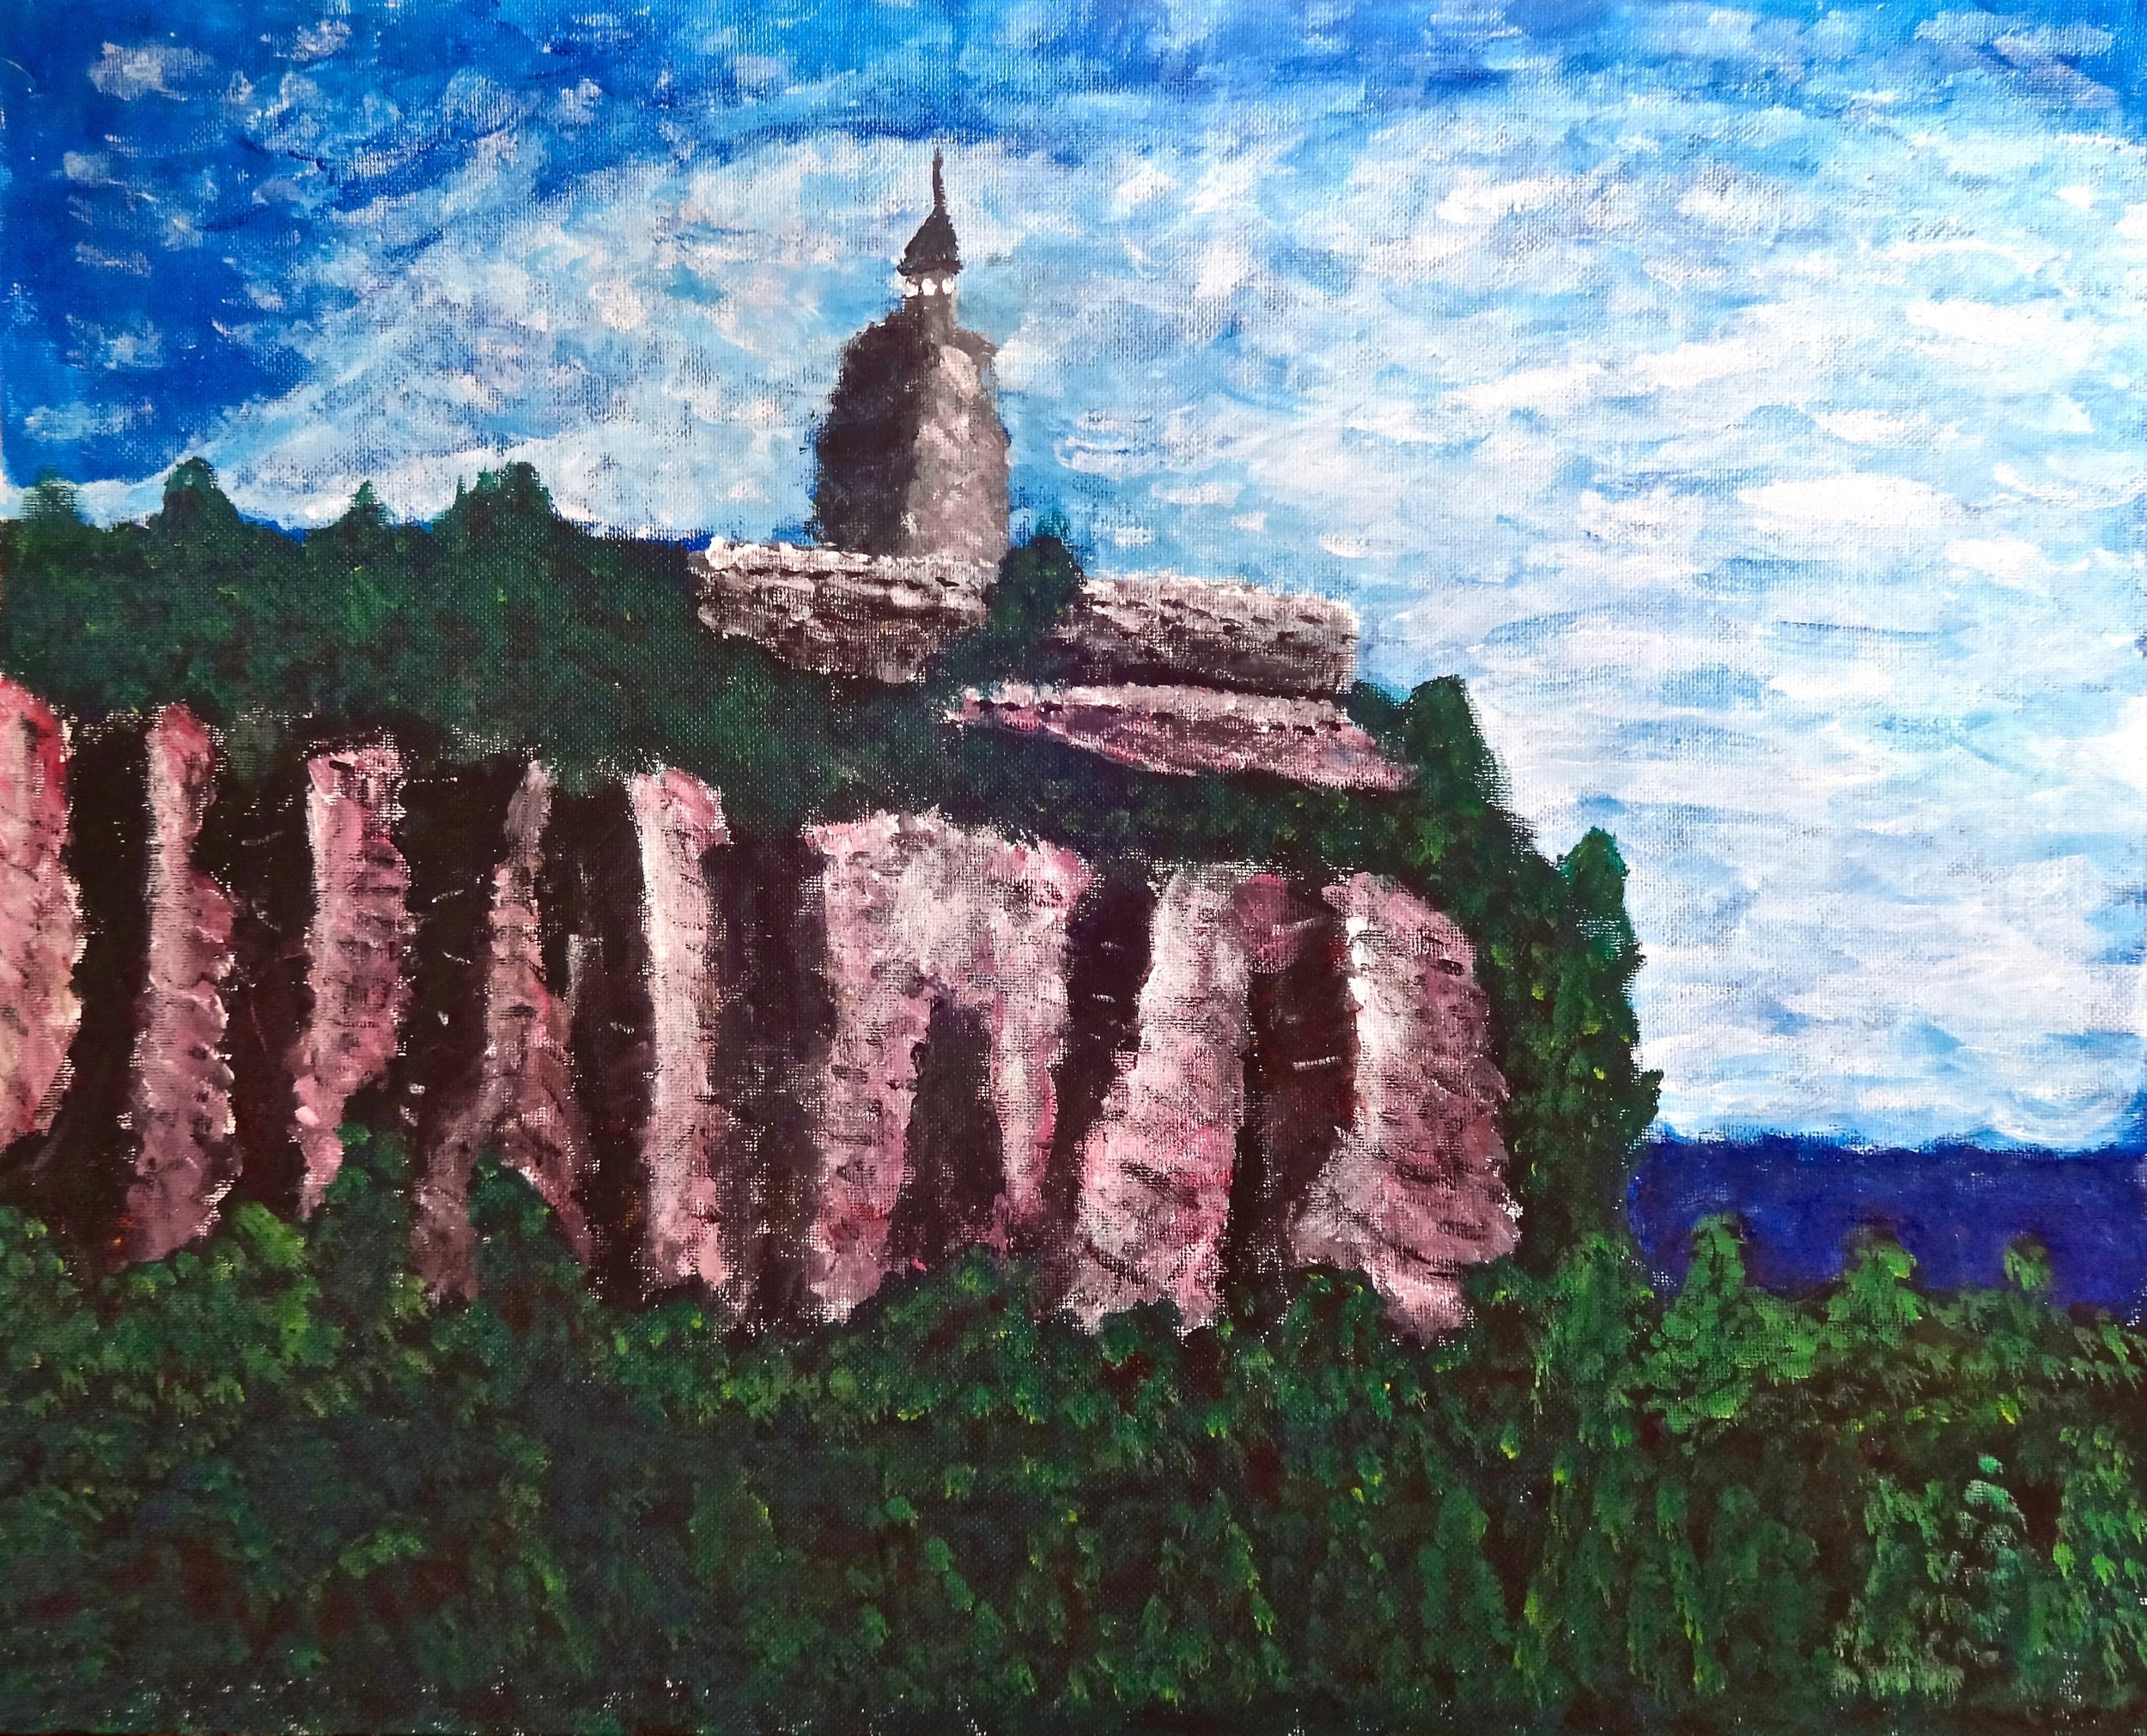 SKY TOP TOWER:Painting by Sylvain Koehler Foisy, age 13. 2015 (Used with permission.)